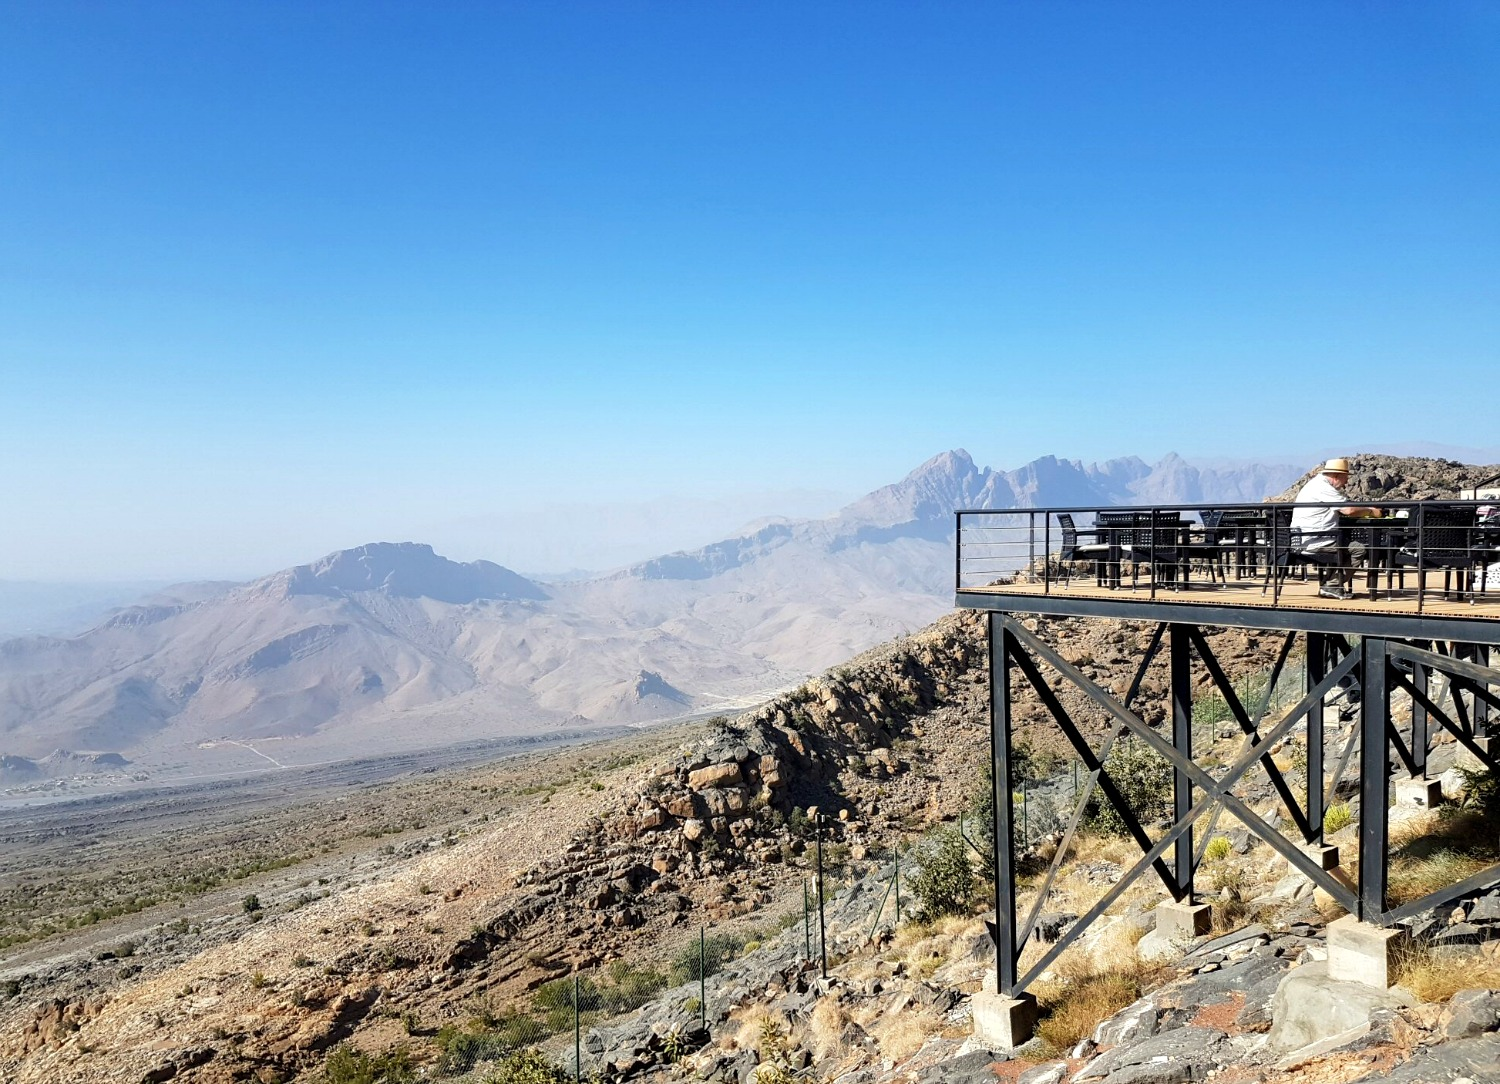 A view out to the Hajar Mountains from The View Hotel in Oman, with the edge of the restaurant terrace on stilts visible with the peaks and blue sky behind - my nine reasons to visit Oman with kids